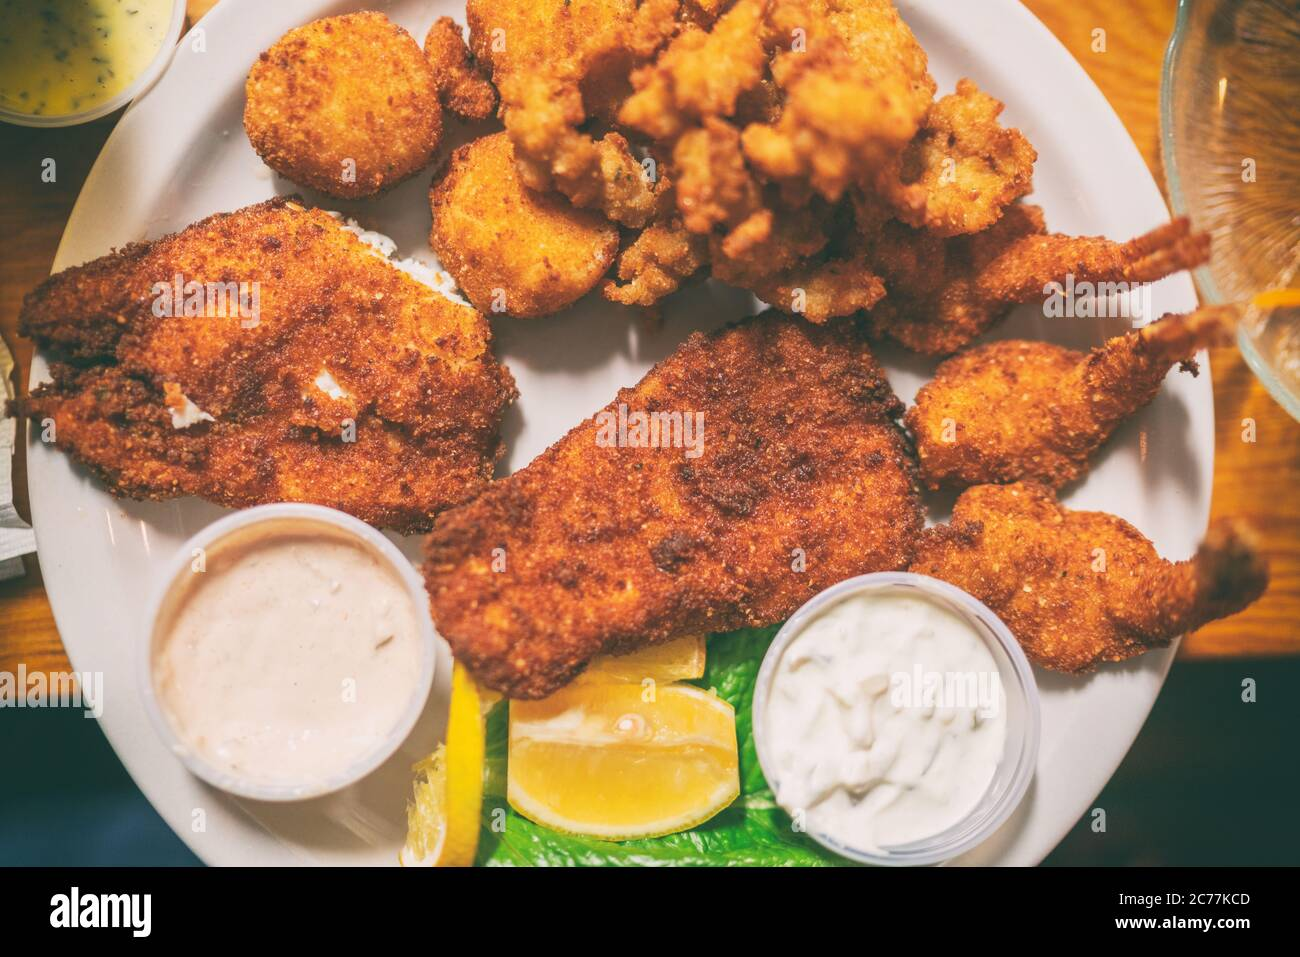 Fried Seafood Platter Top View Of Local Dish From Key West Florida Conch Fritters Cod Fish In Oily Batter Fry Stock Photo Alamy